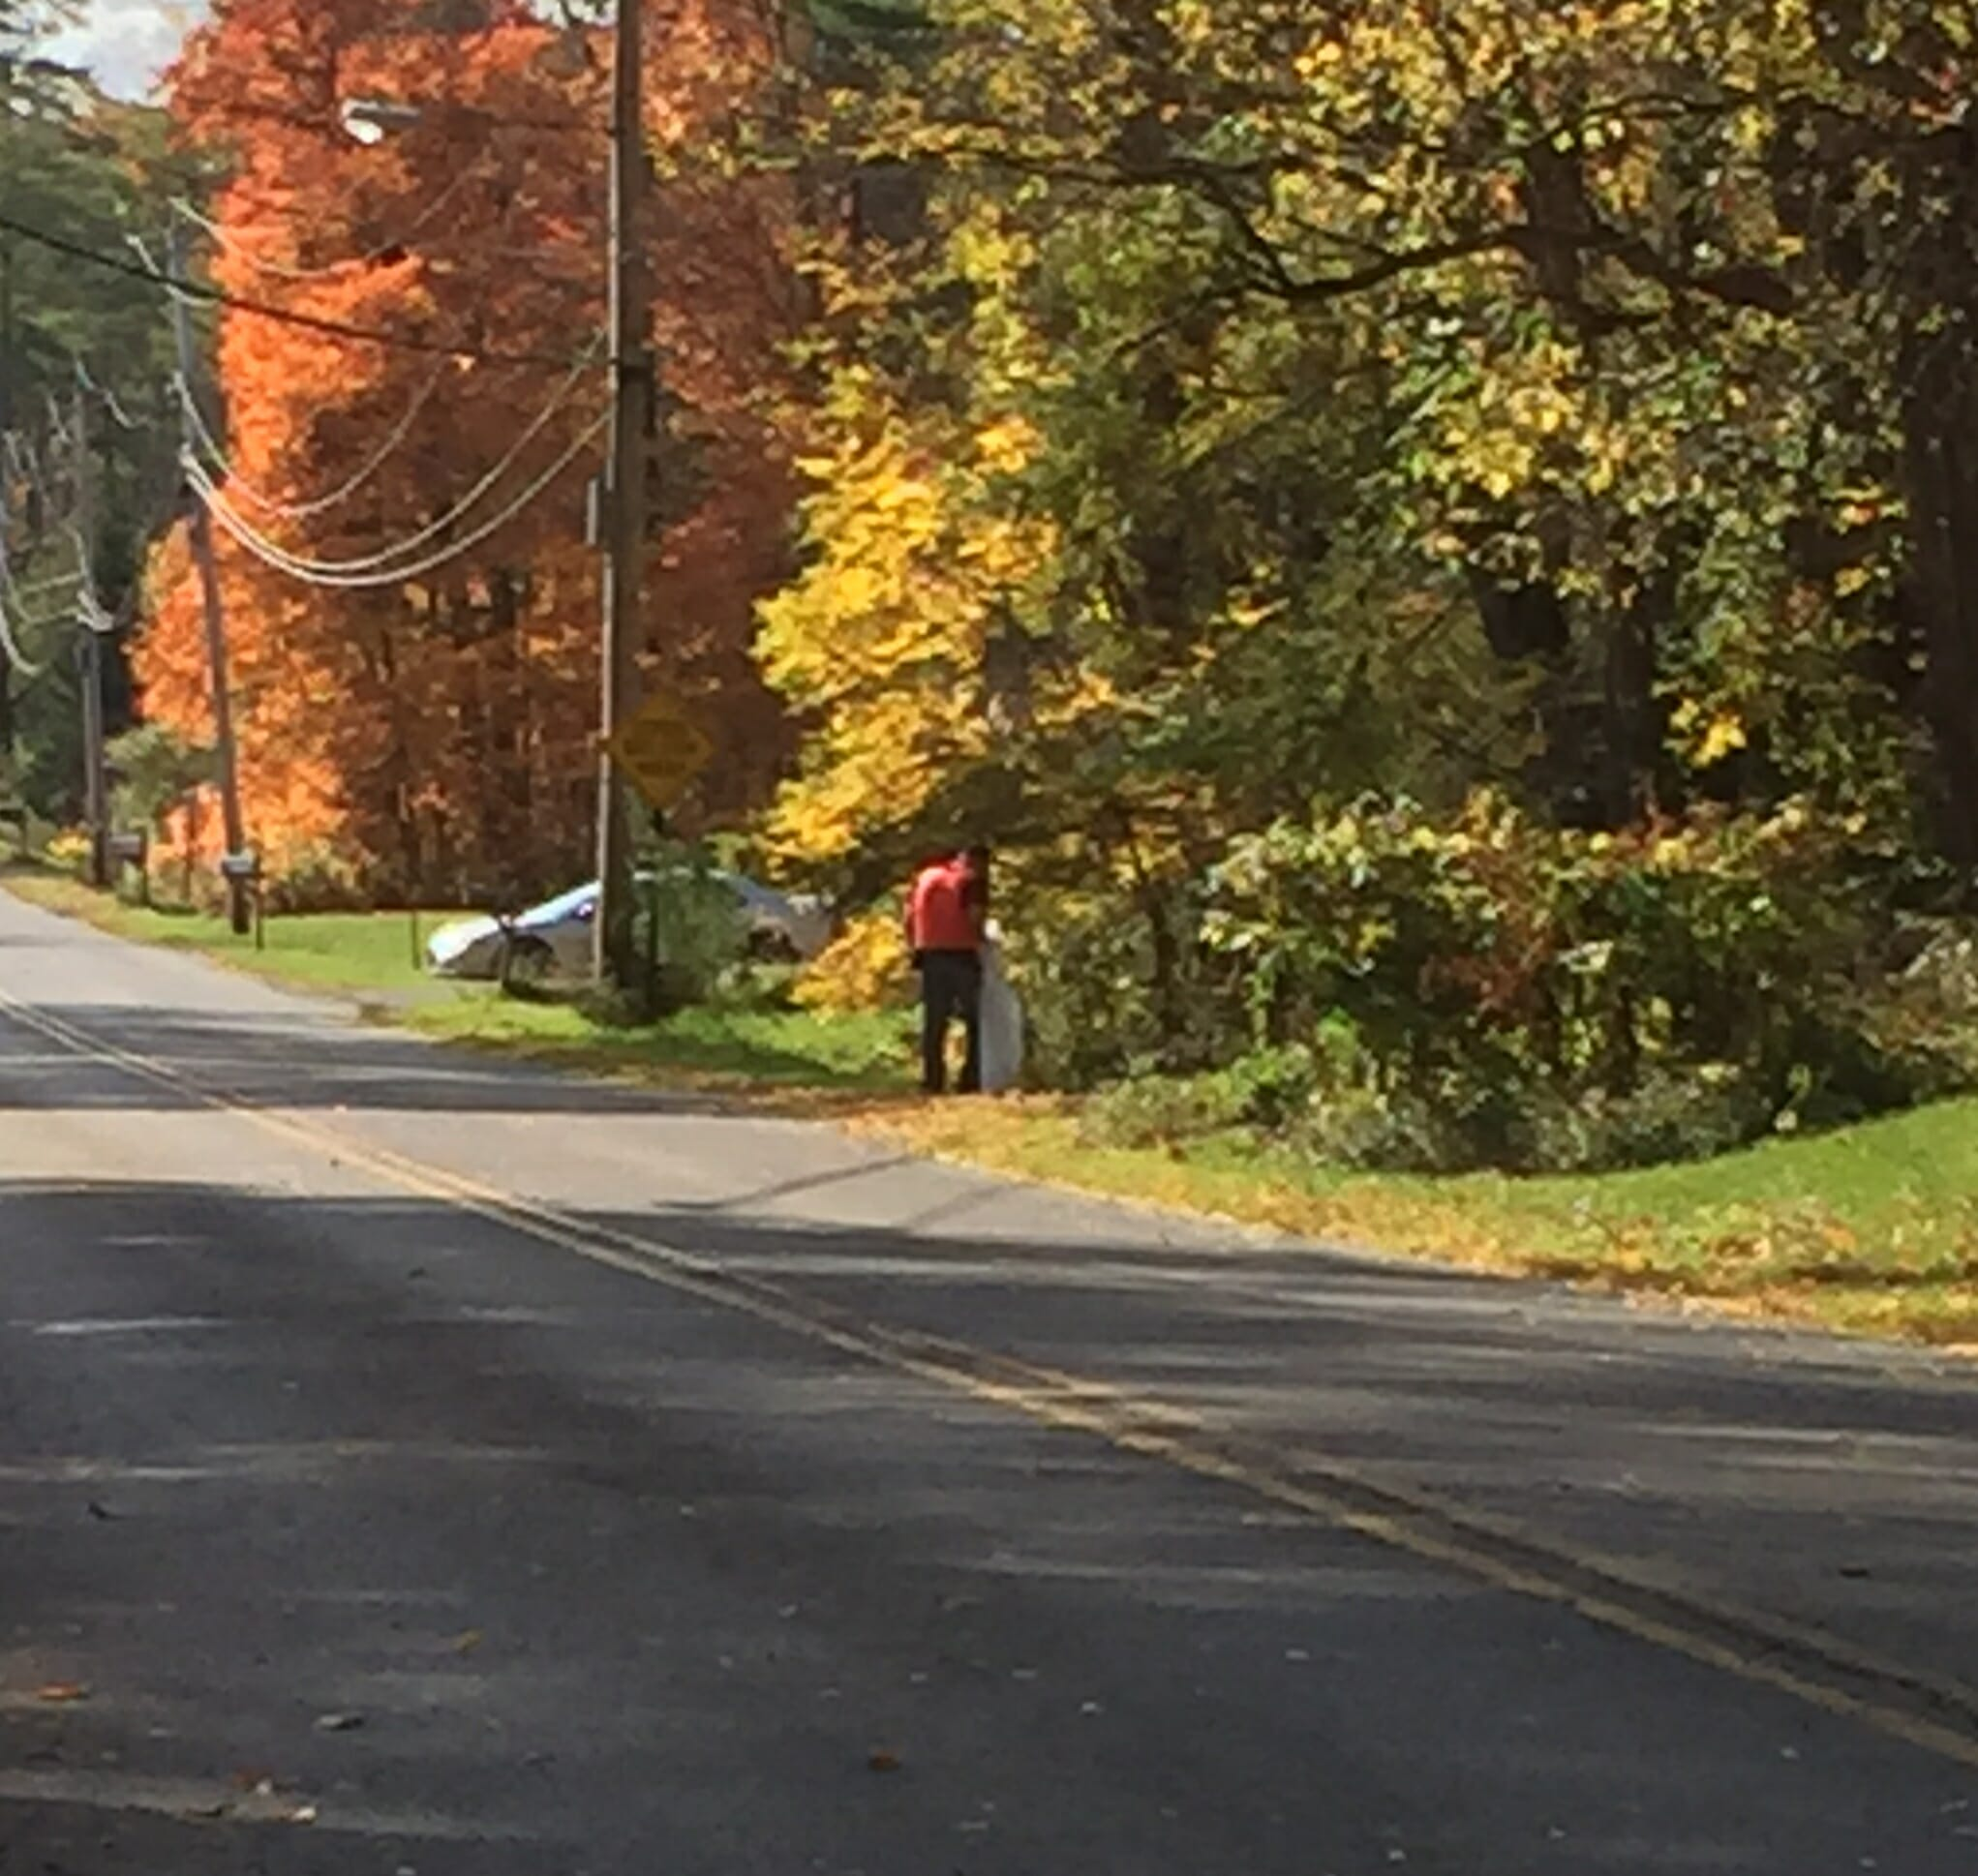 Person cleaning up roadside trash